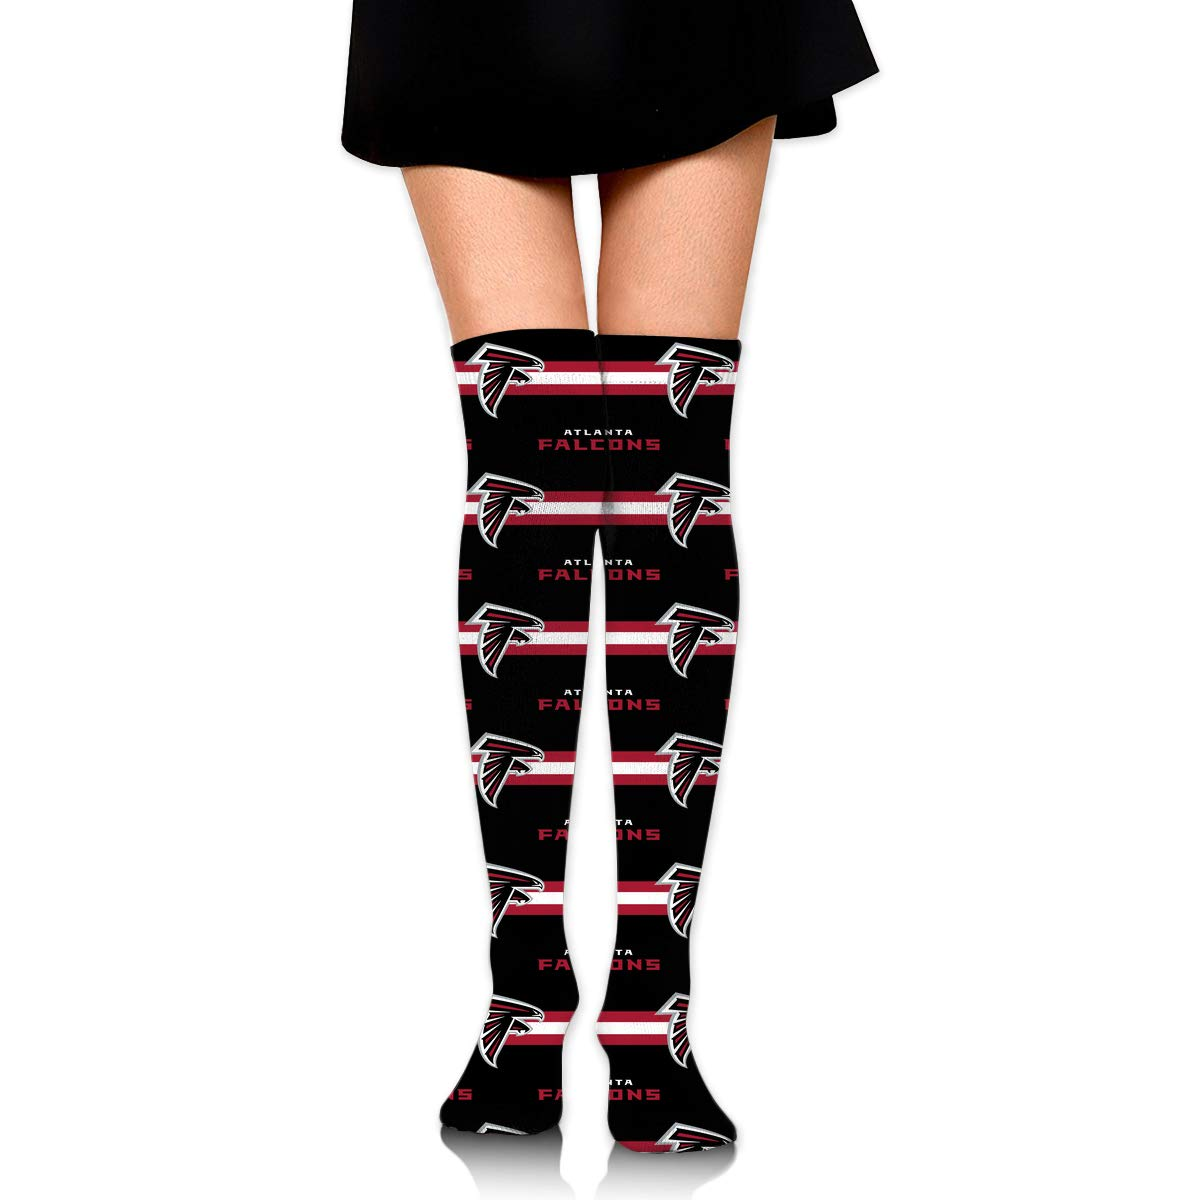 Sorcerer Custom Girls Over Knee High Boot Stockings Leg Warmers Atlanta Falcons Women's Polyester Thigh High Socks Gift by Sorcerer